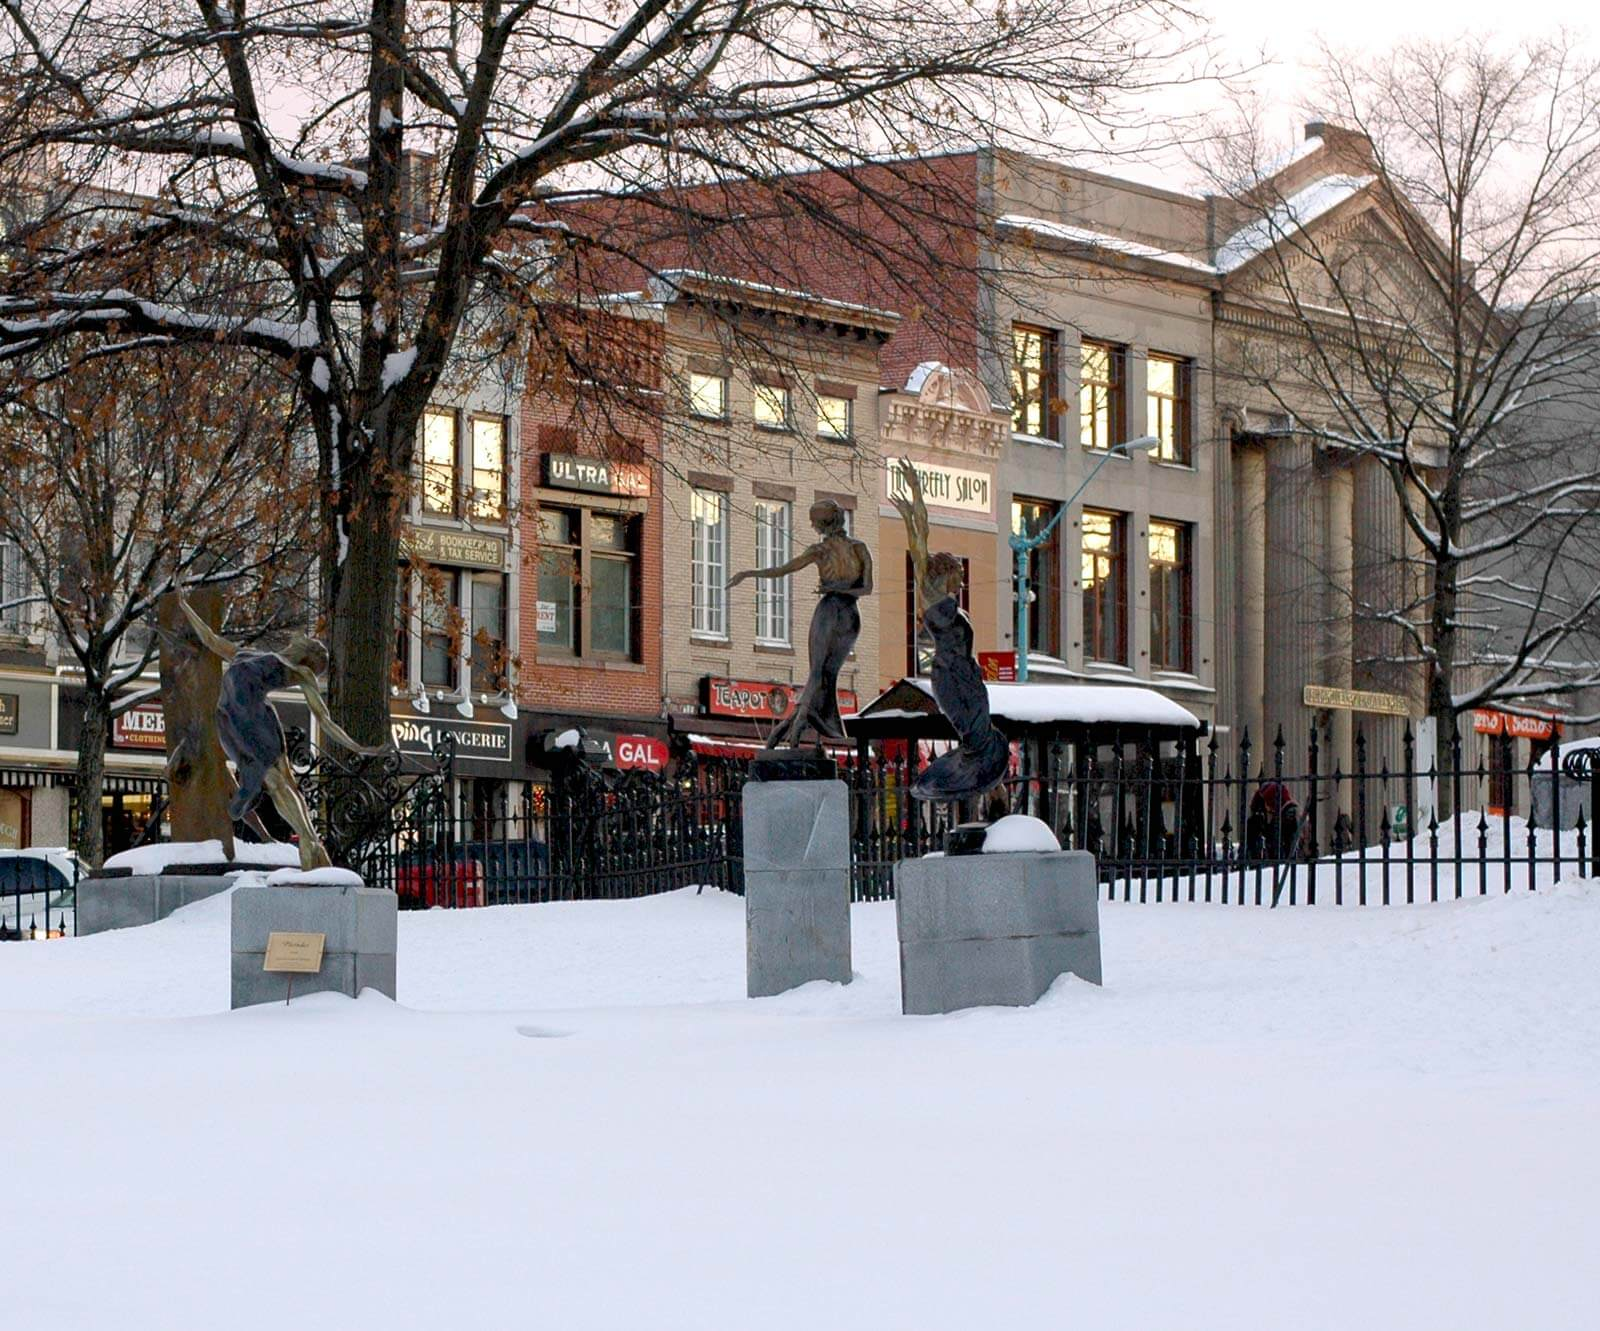 Three bronze dance sculptures by Andrew deVries in the winter Northampton, MA